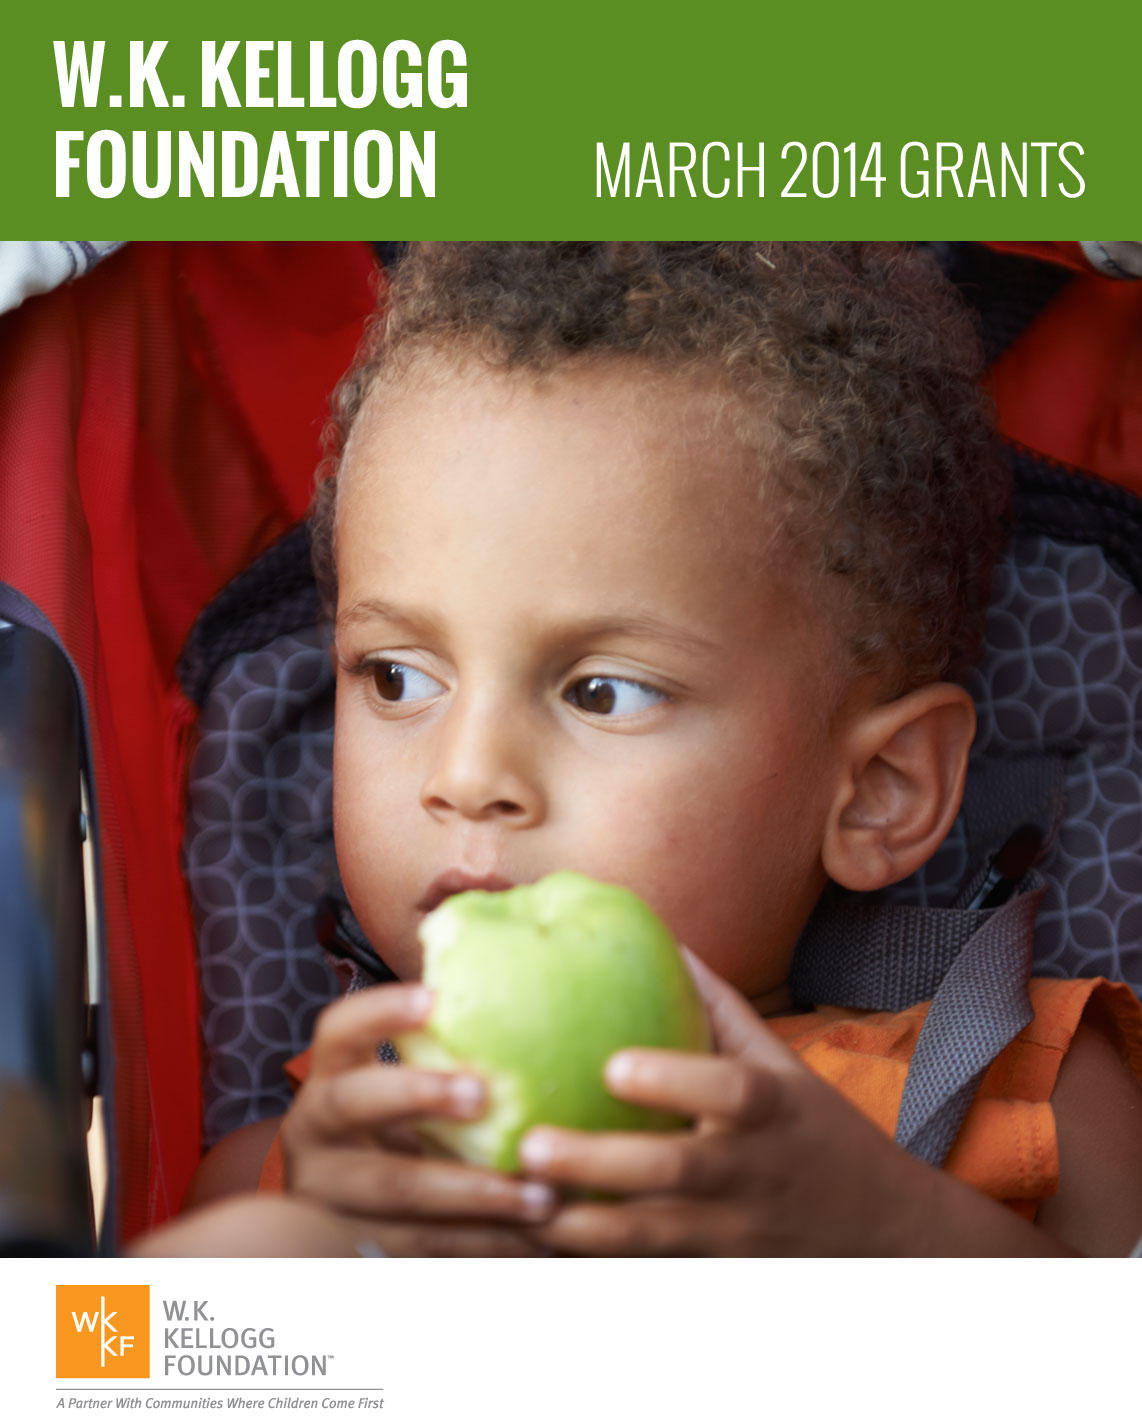 W.K. Kellogg Foundation Grants - March 2014